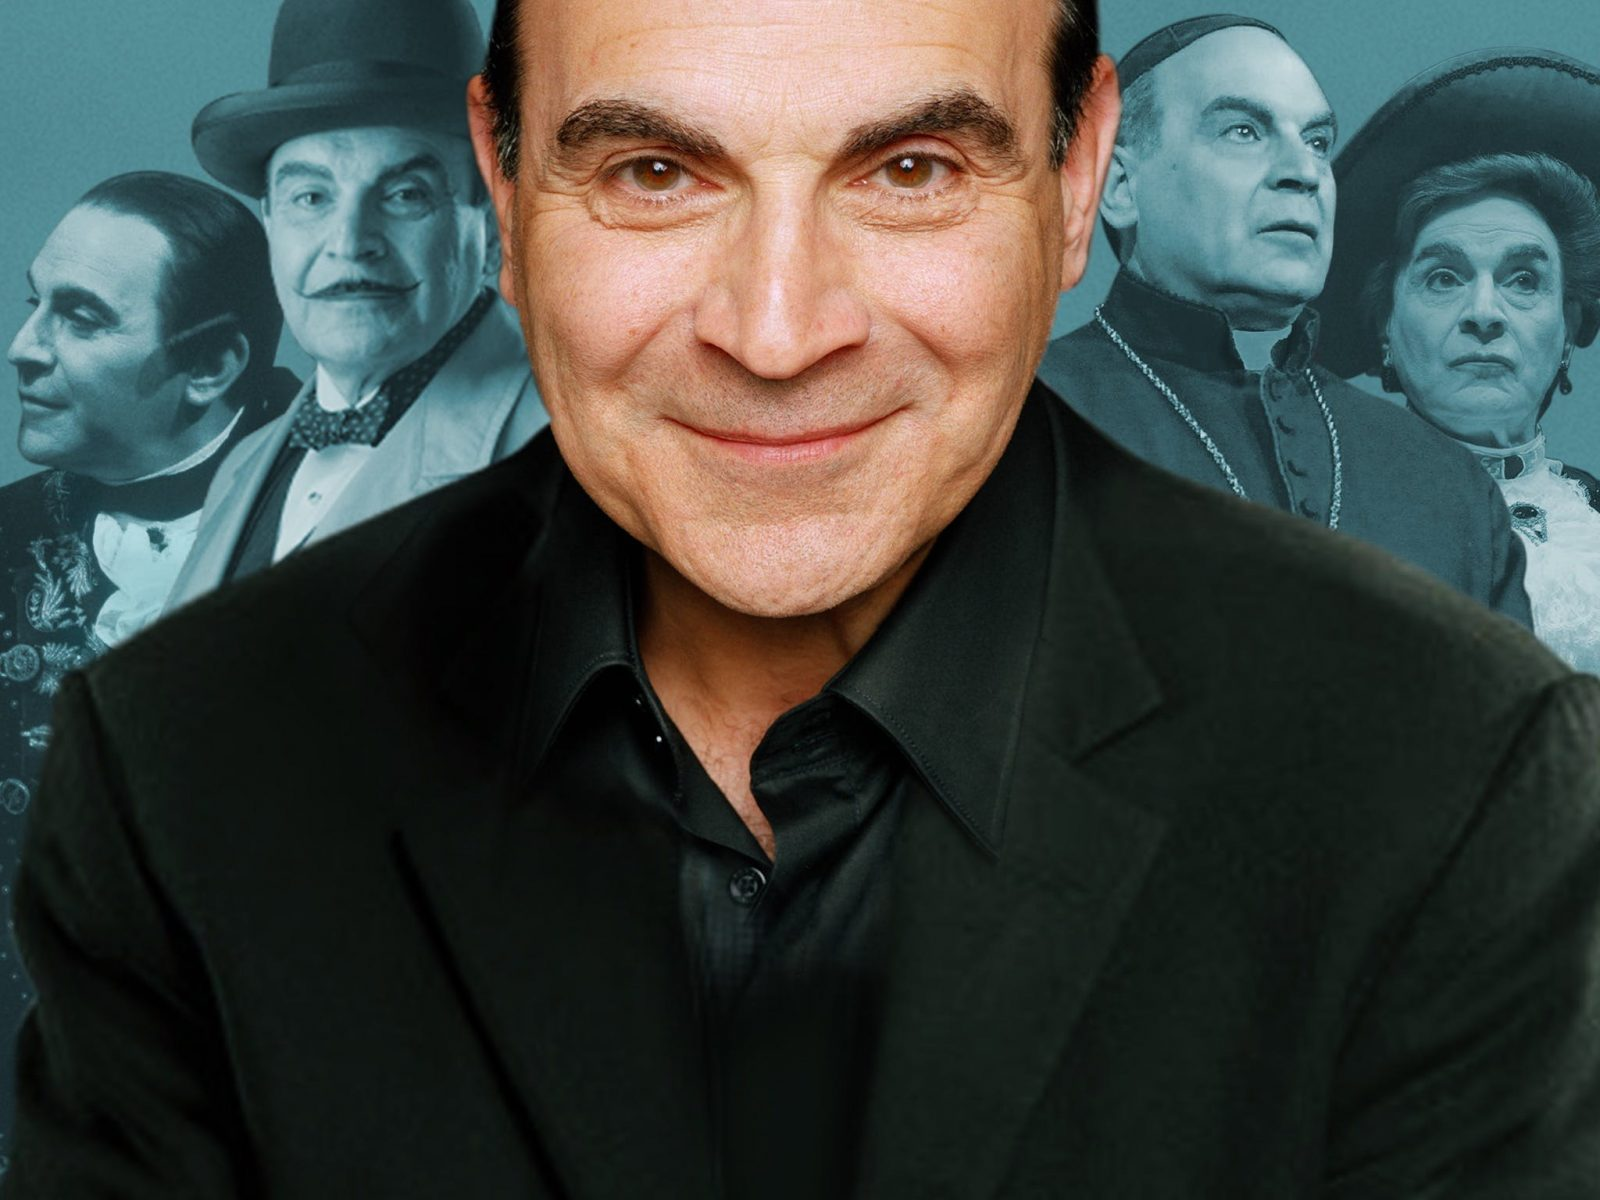 David Suchet - Poirot And More: A Retrospective, Perth, Western Australia